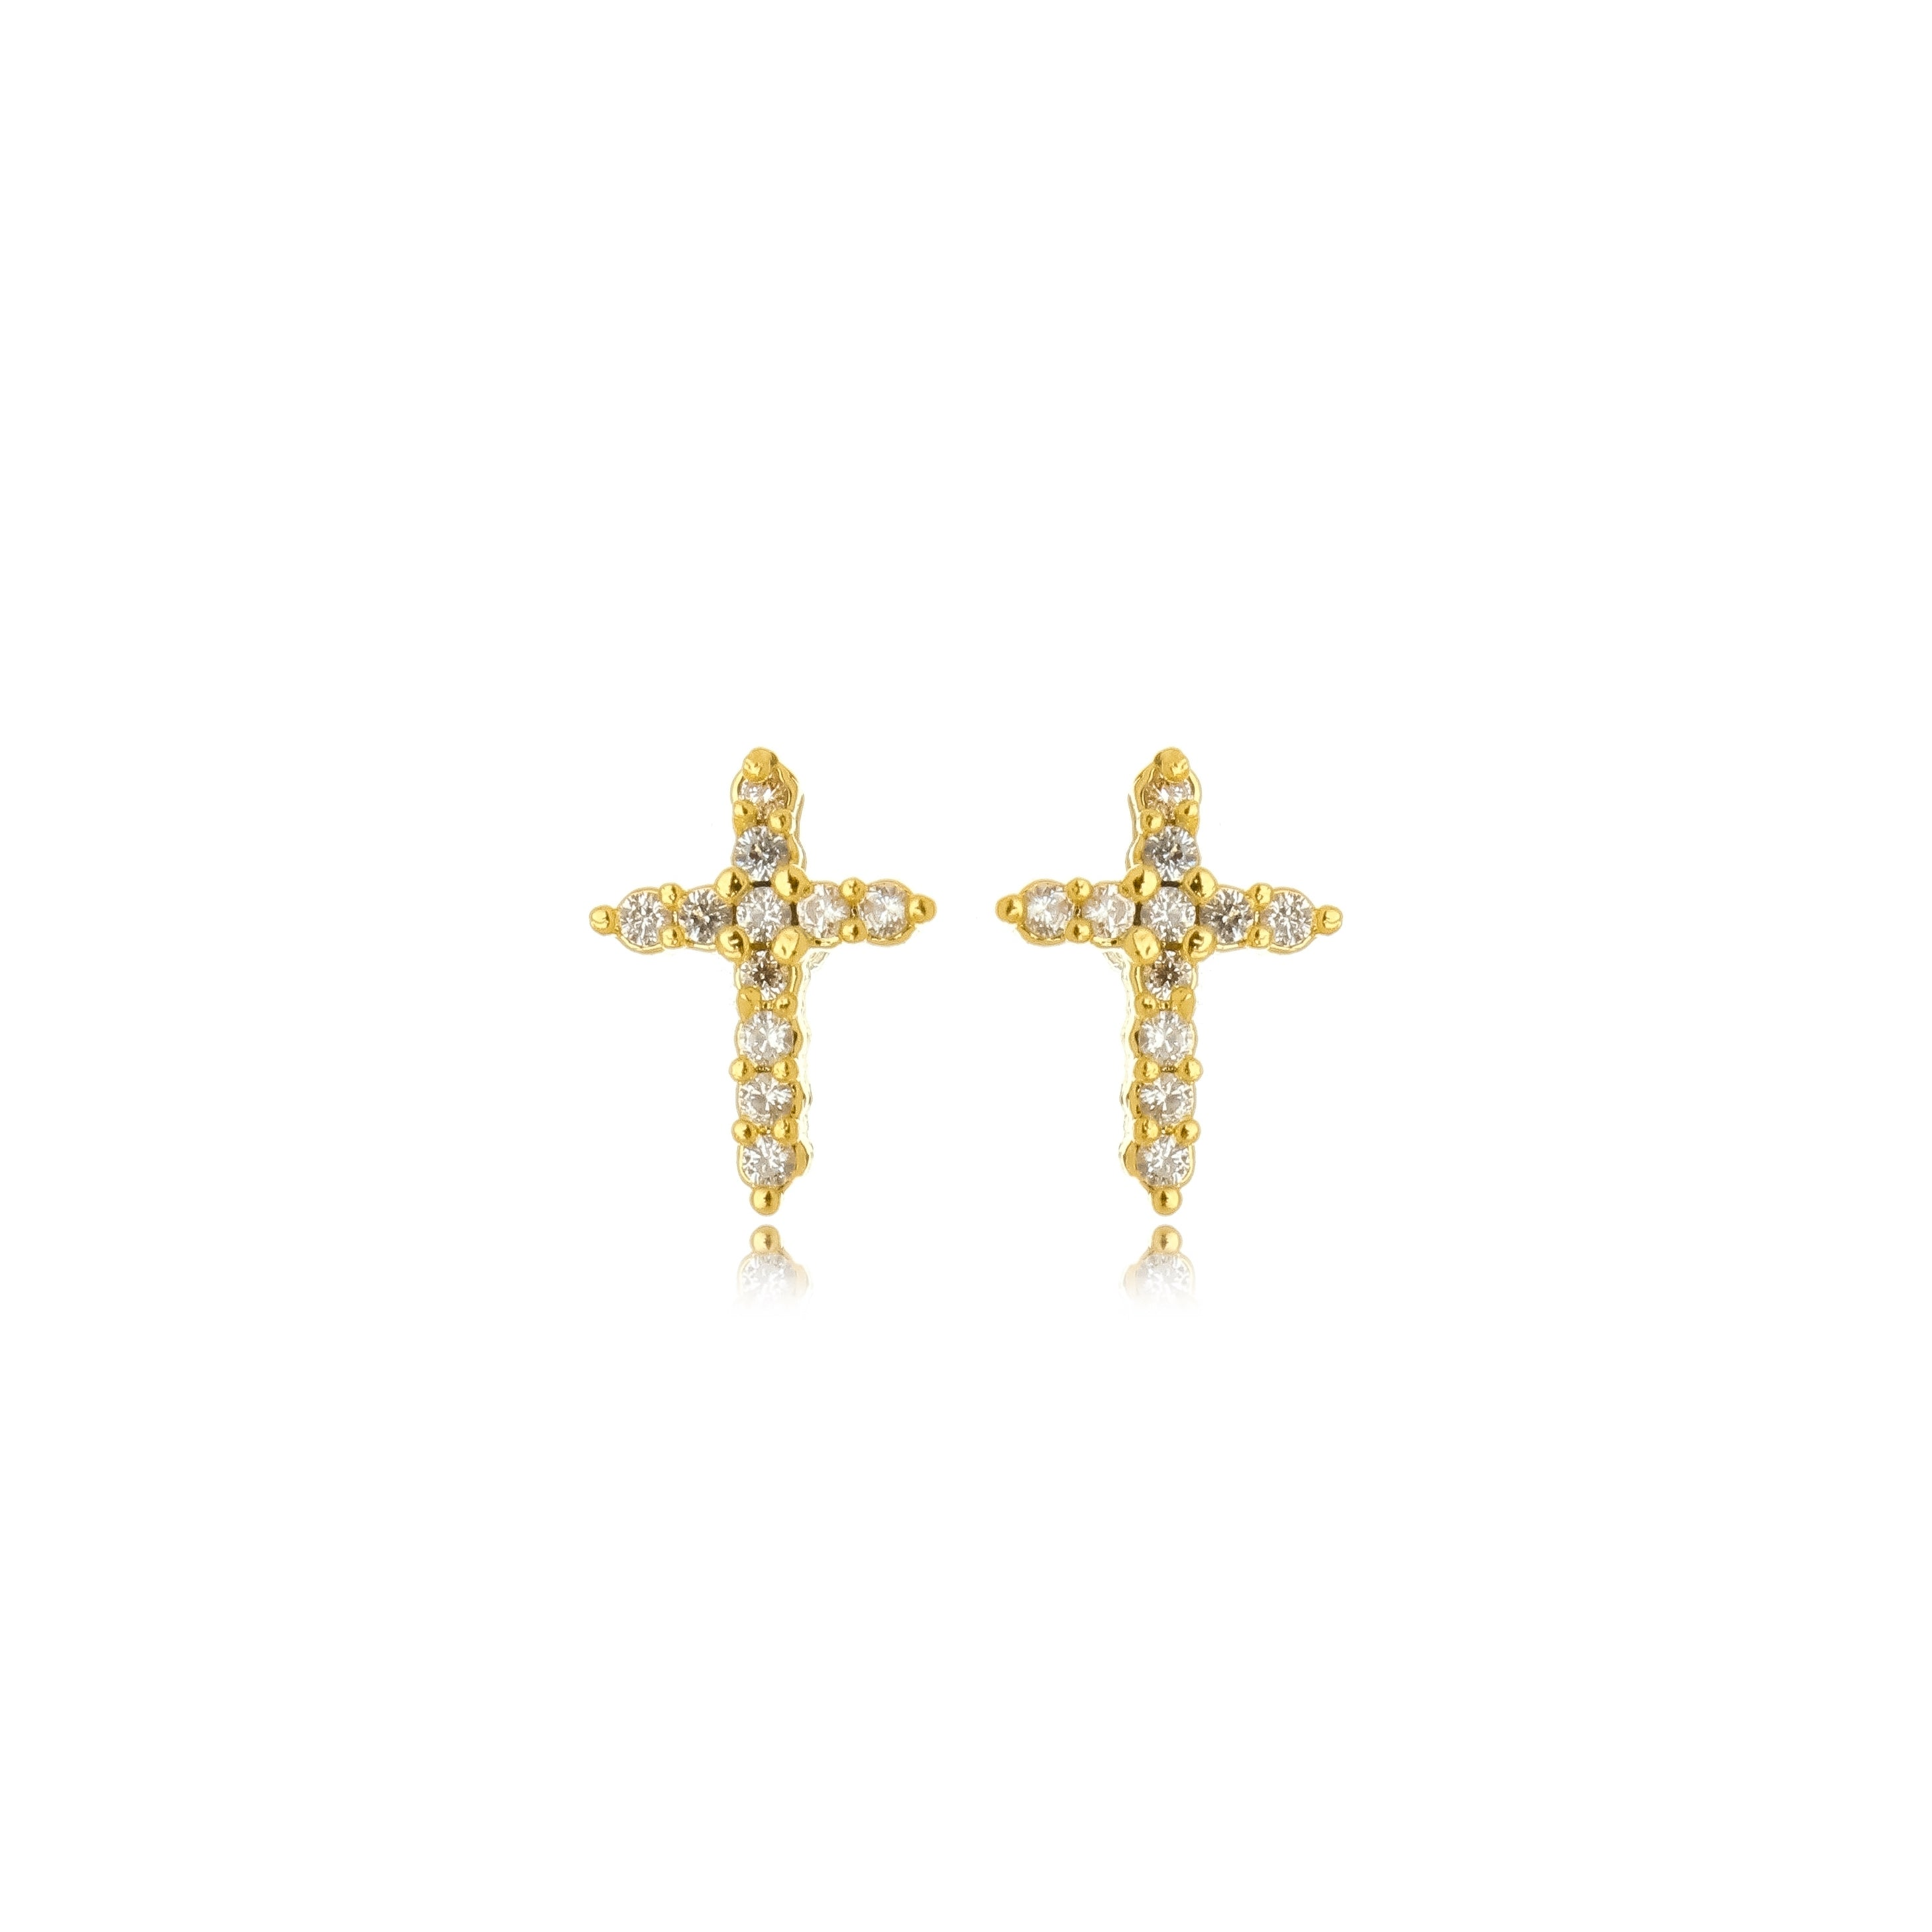 Small Cross Studded Earring in 18k Gold Plated